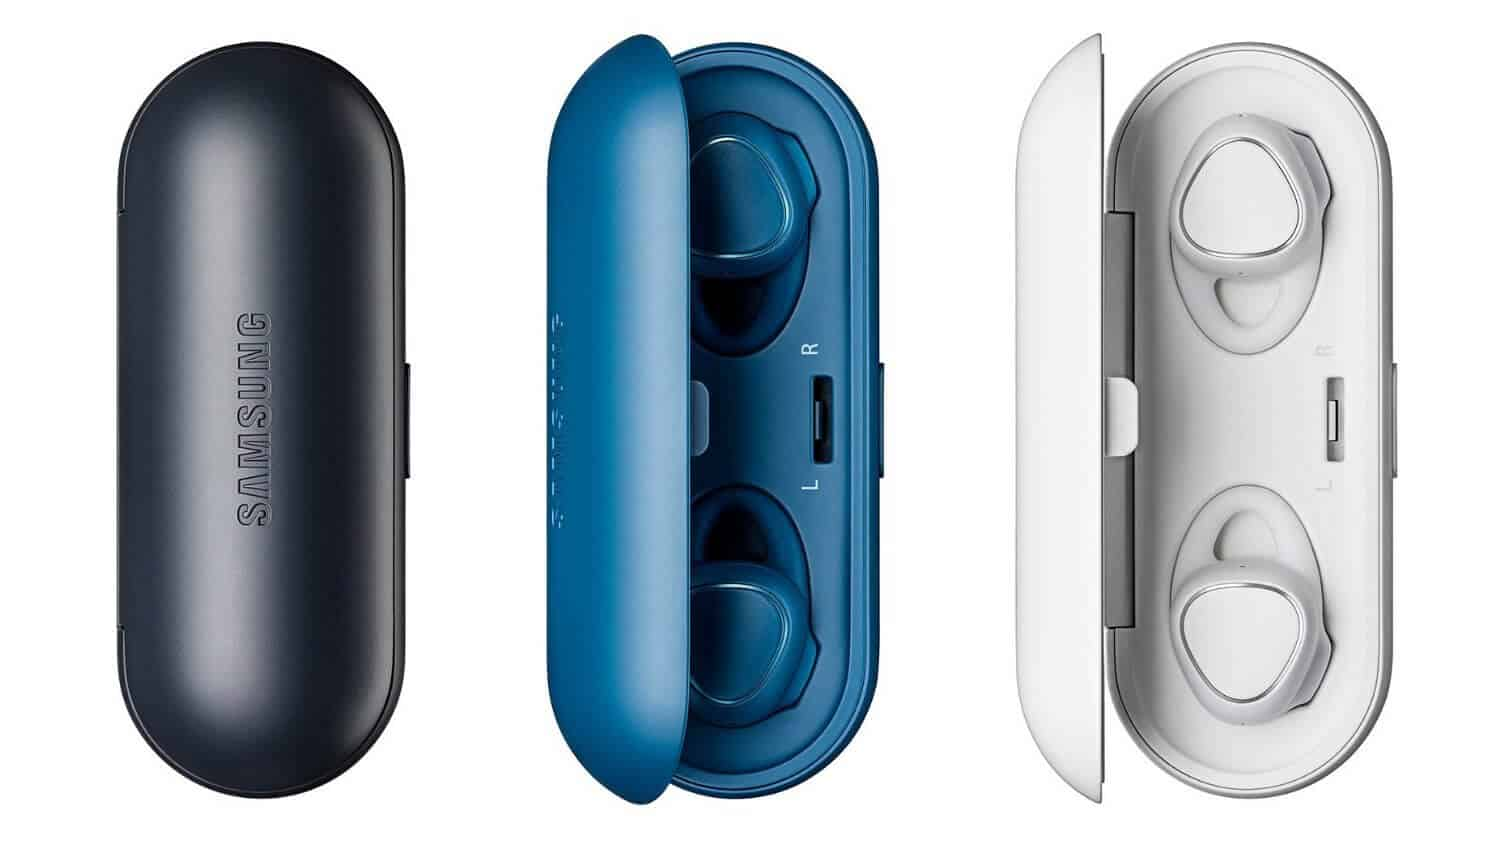 Samsung S Gear Iconx Earbuds Are Now Available On Amazon